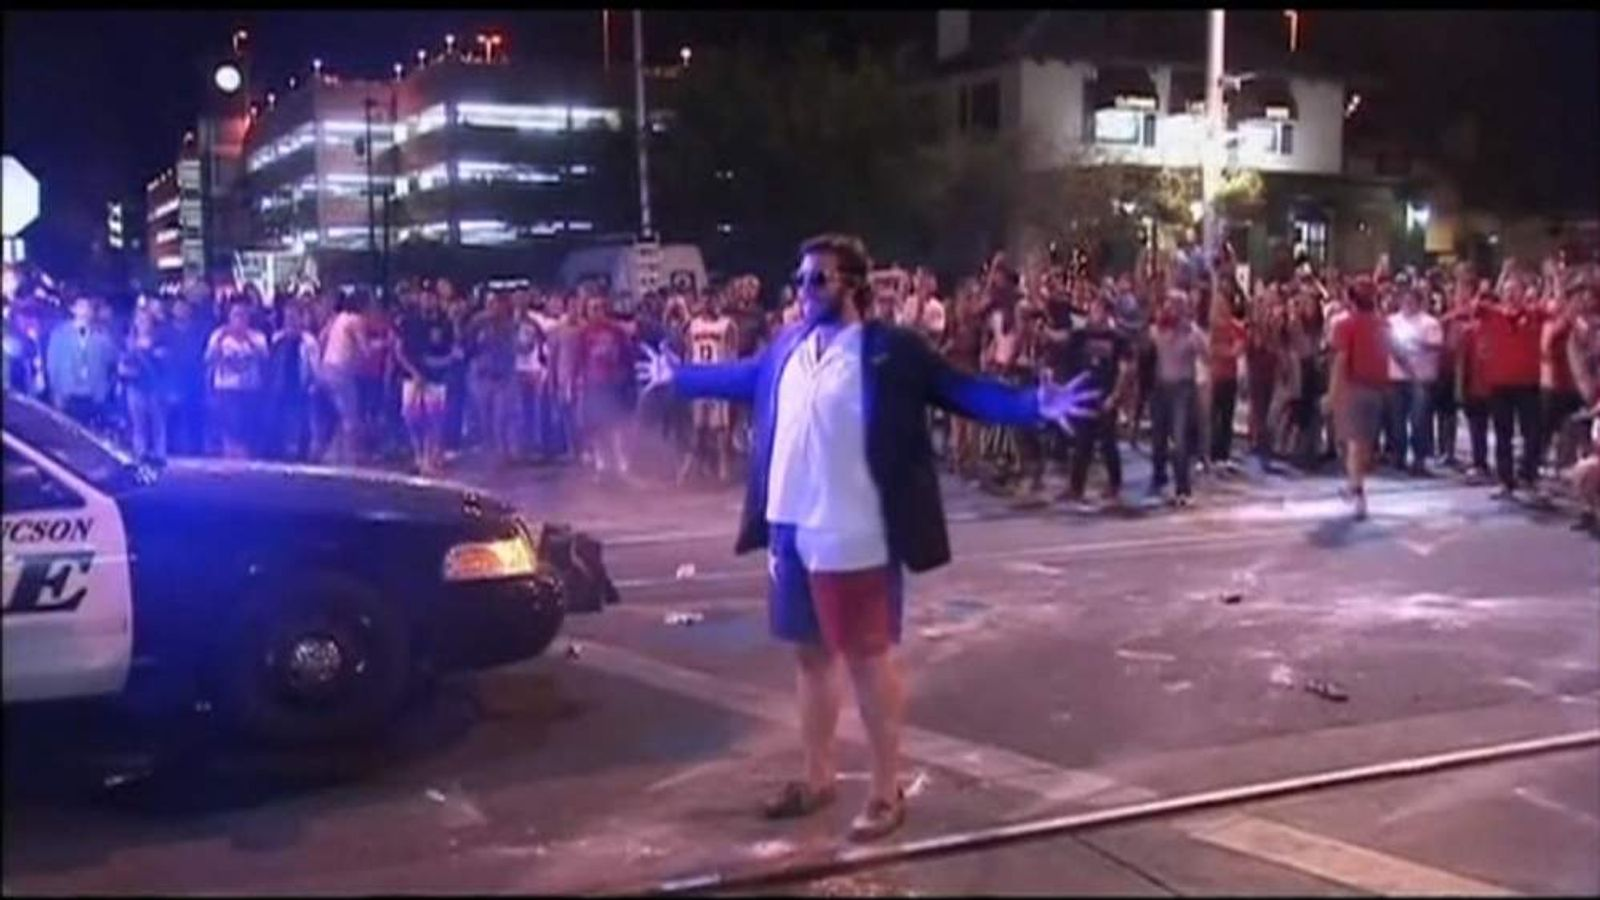 Students from University of Arizona riot after their team lost